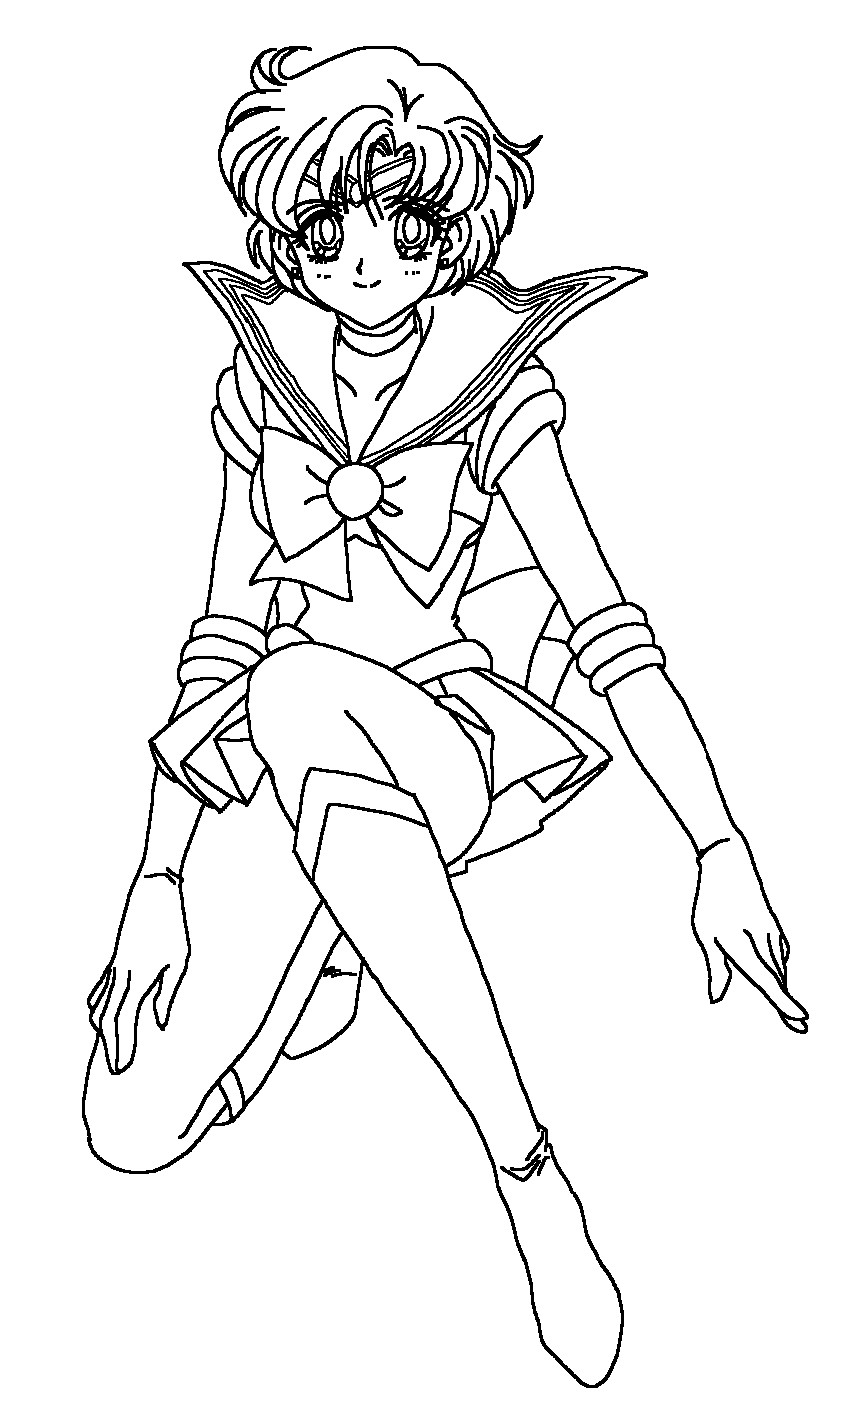 Sailor mercury coloring page by sailortwilight on deviantart for Coloring pages mercury